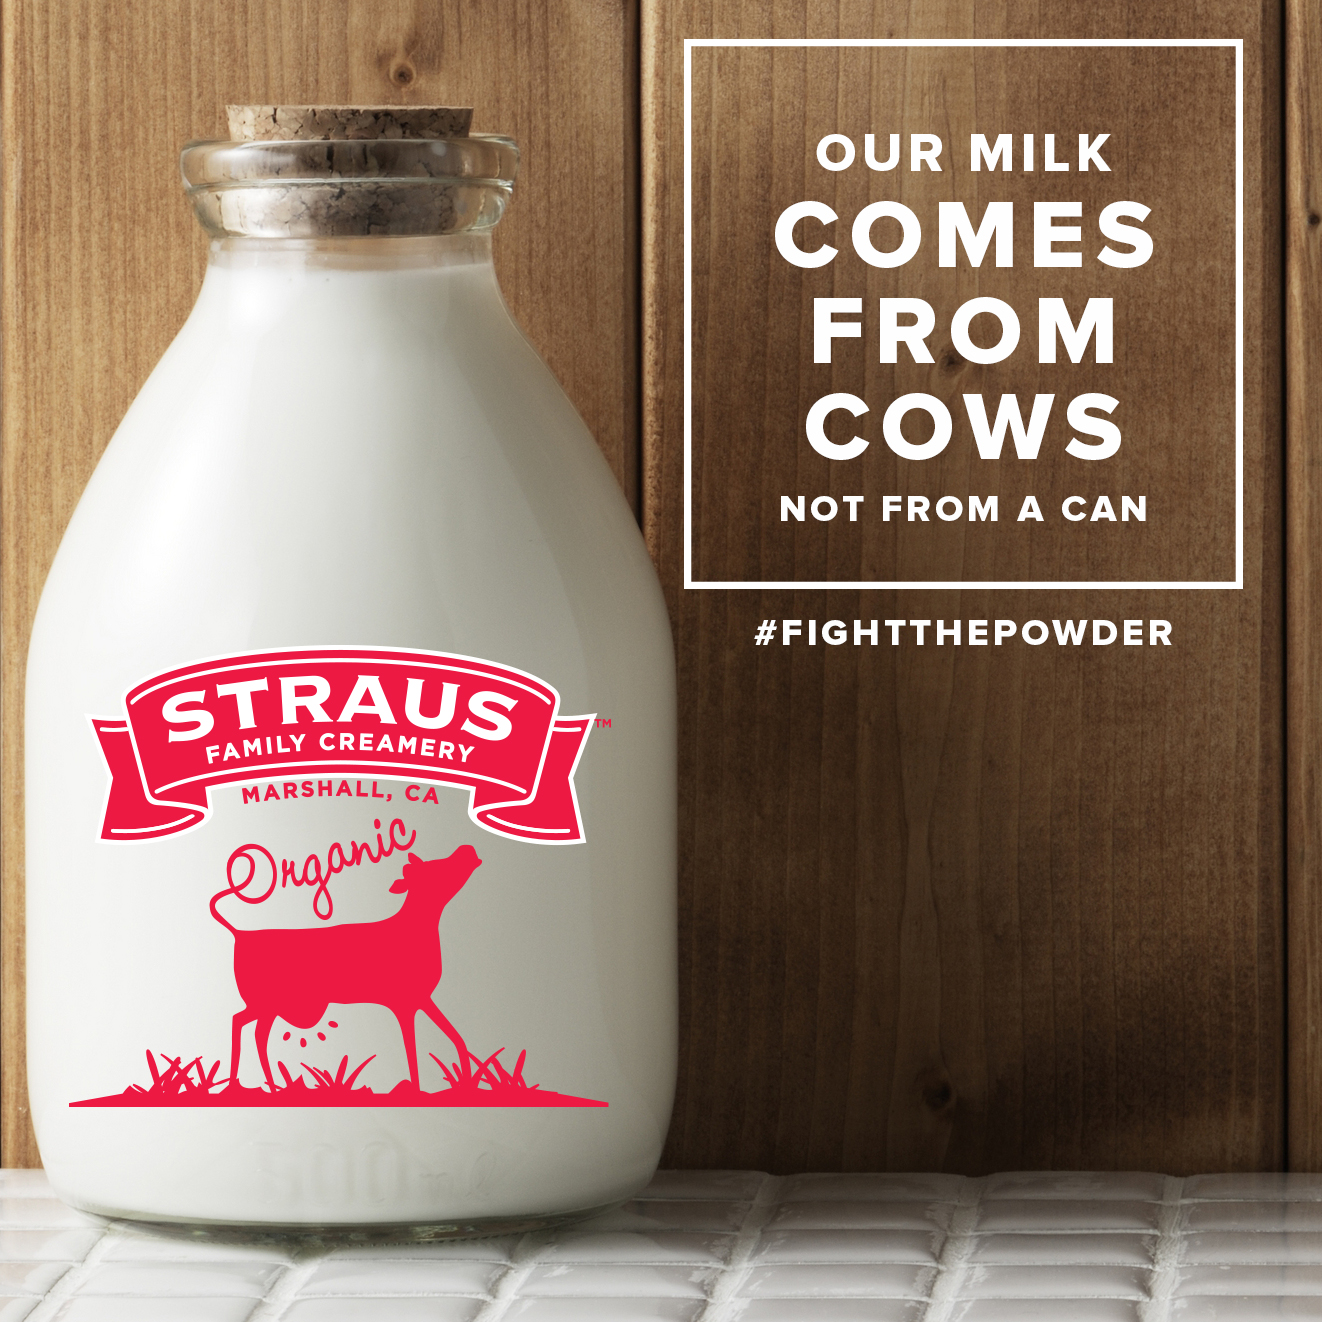 We use  Straus Family Creamery organic milk , no non-dairy creamers.      Local, organic, rBGH-free; we partnered with Straus because they're the best milk we could find that balanced perfectly with our premium teas. No non dairy creamers; just rich and real dairy, from happy California cows. In our New York stores, we use milk from Battenkill Valley Creamery!    Visit them at:  www.strausfamilycreamery.com